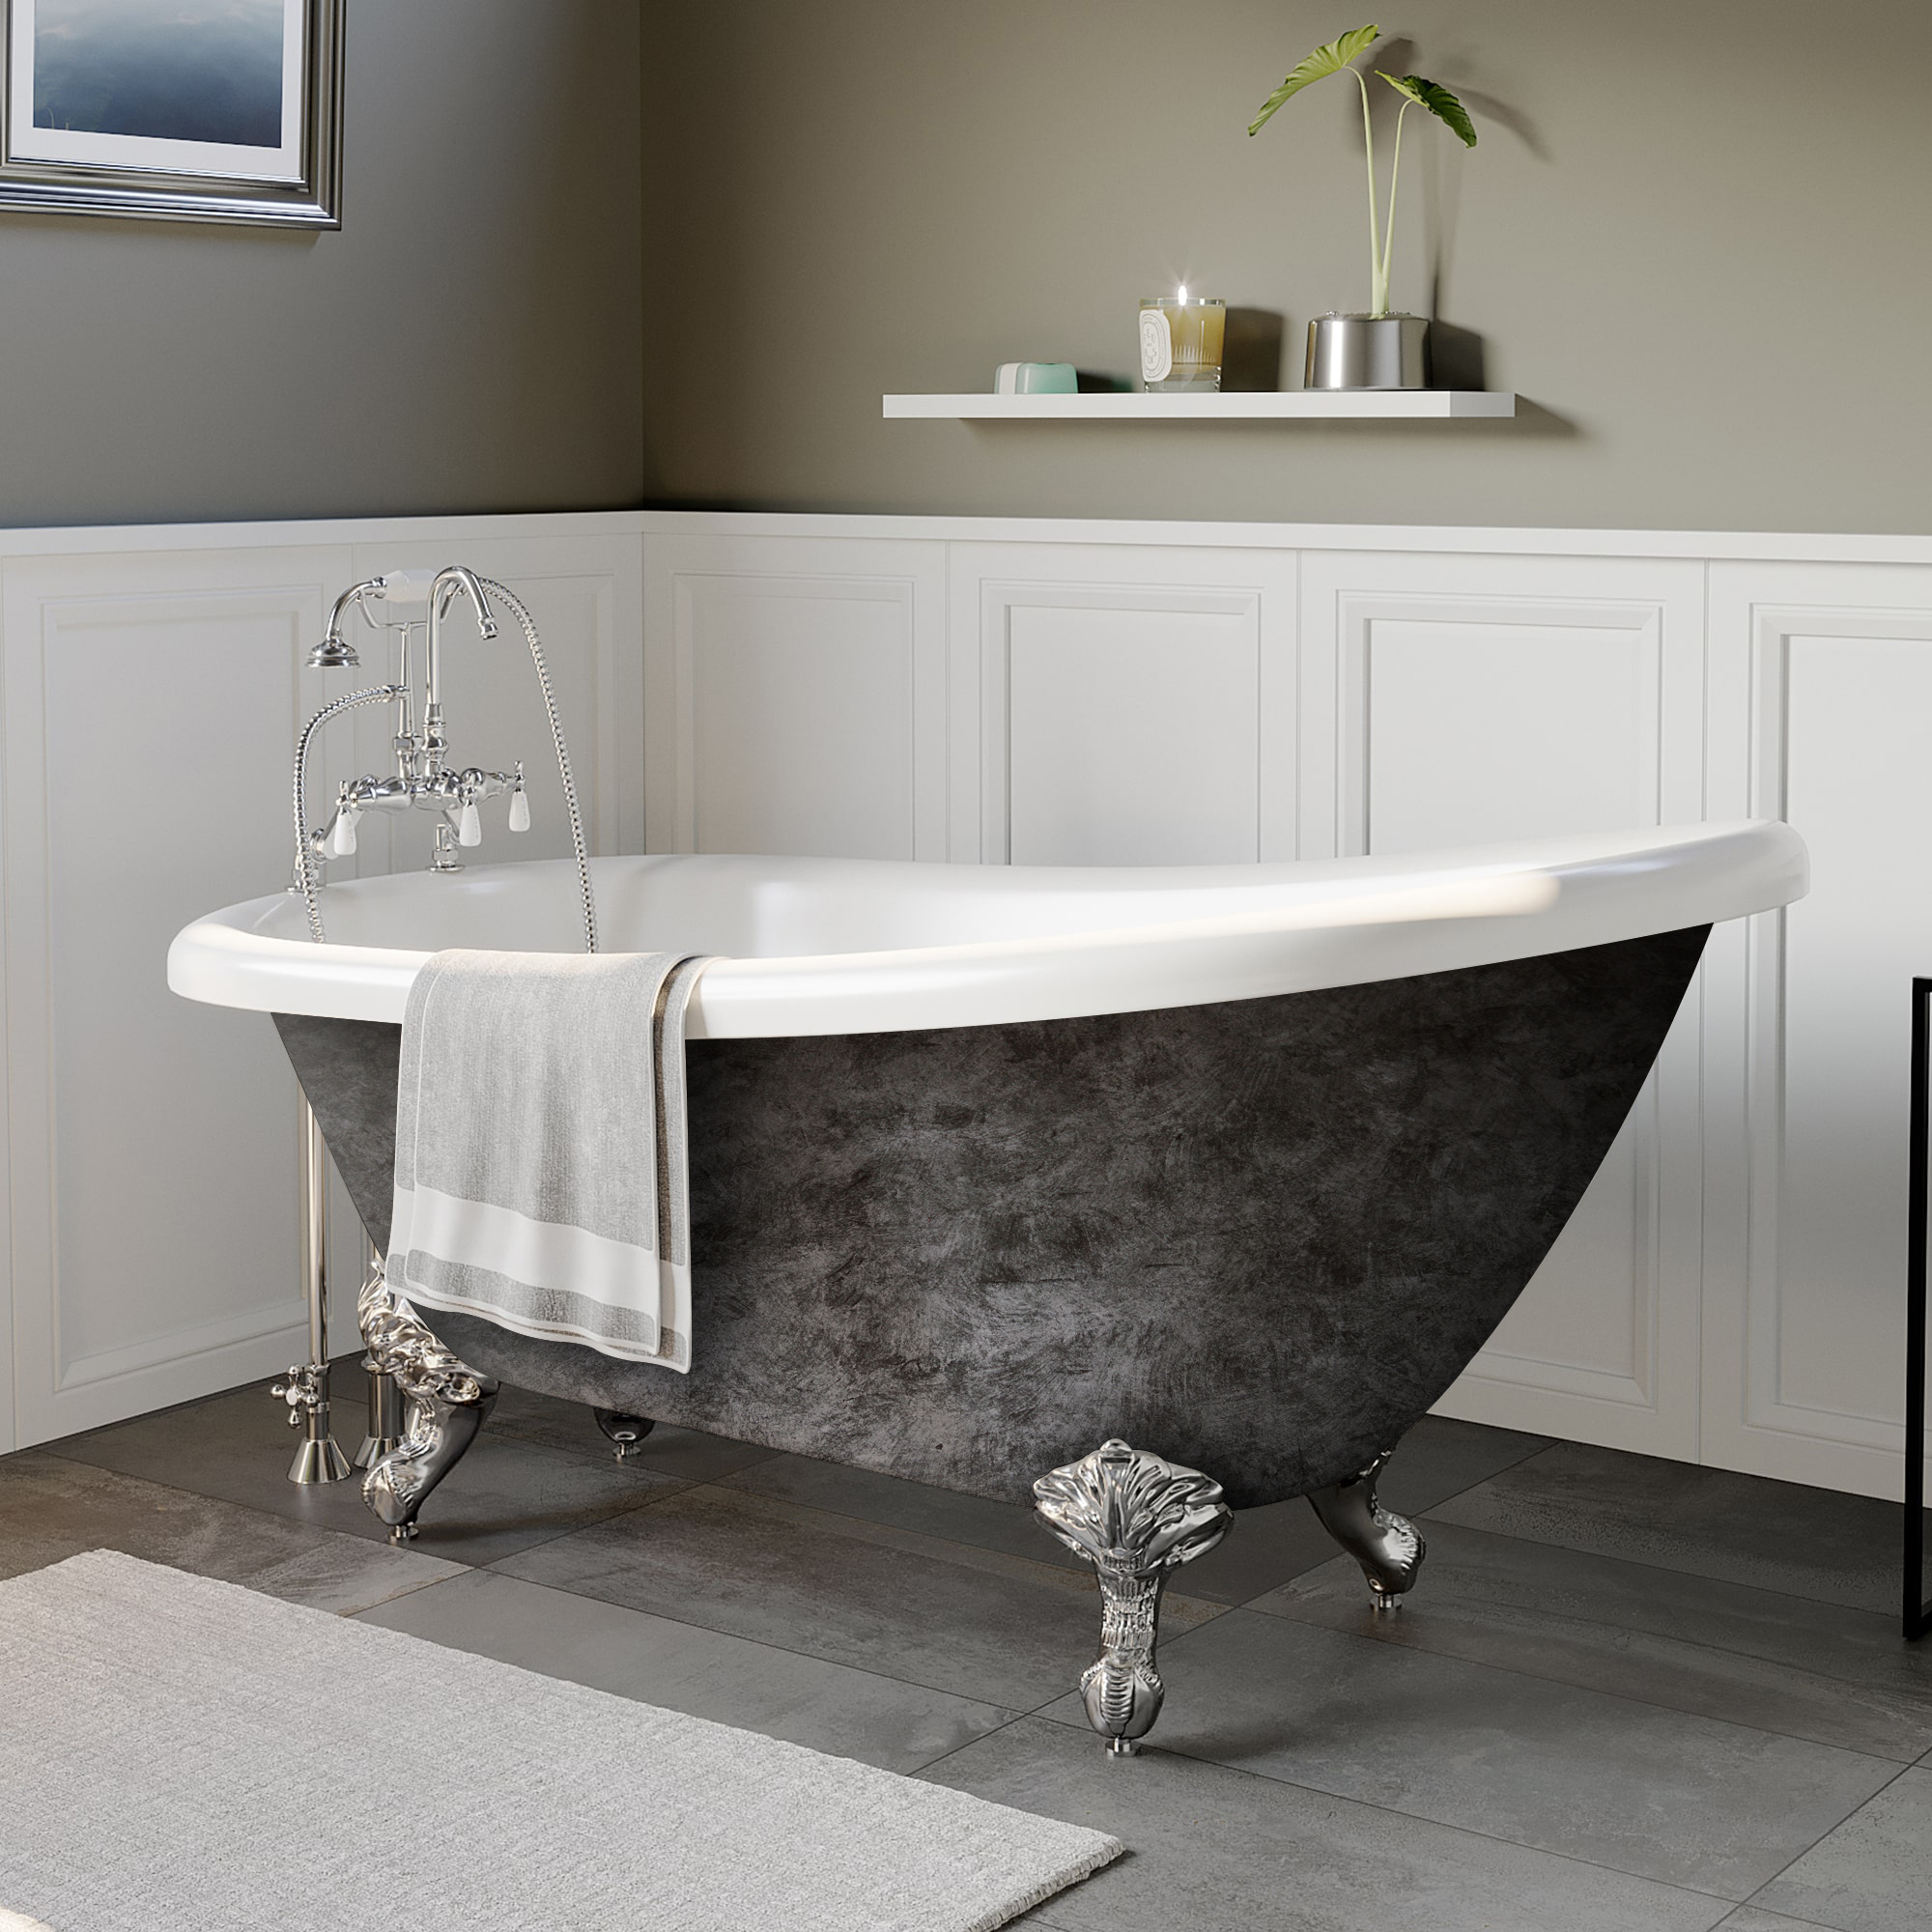 "Cambridge Scorched Platinum 67"" x 28"" Acrylic Slipper Bathtub with  ""7"" Deck Mount Faucet Holes and Polished Chrome Ball and Claw Feet"